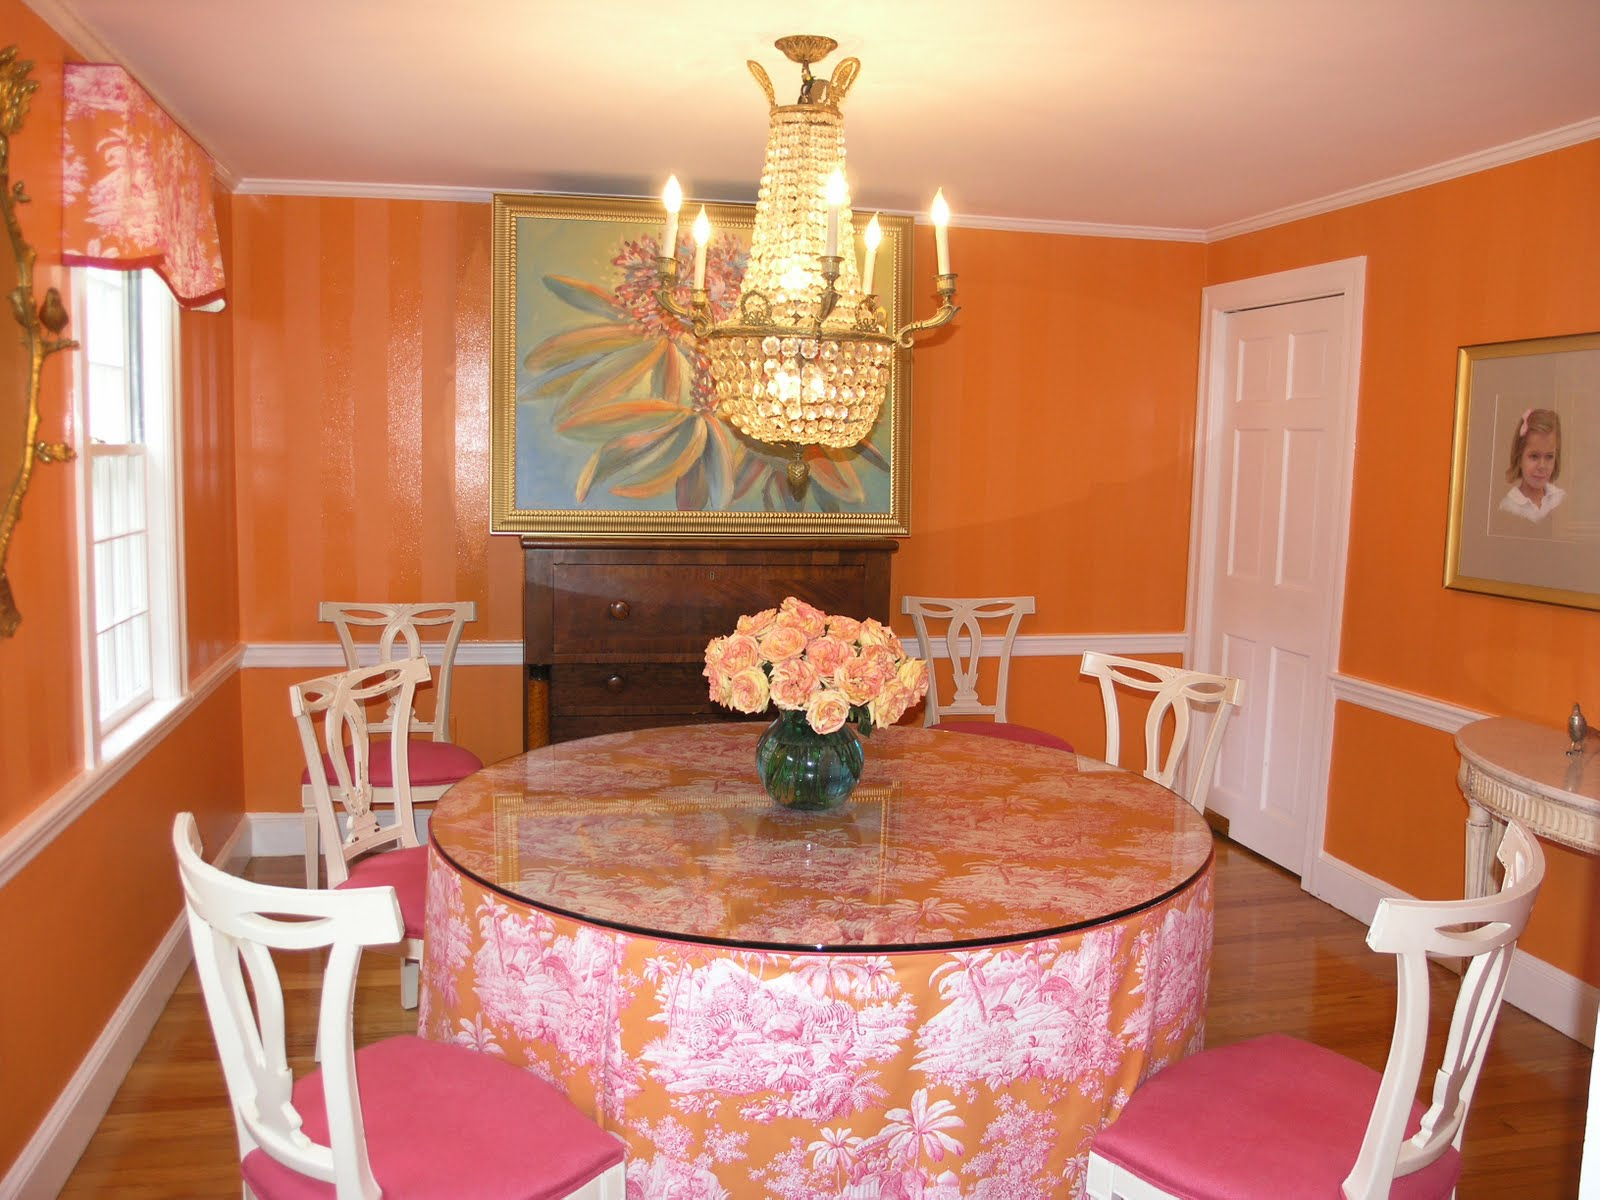 Open Plan Orange Dining Room With Dark Furniture In The First Picture Is Very Nice Combination Wall Combines White Floor Under Some